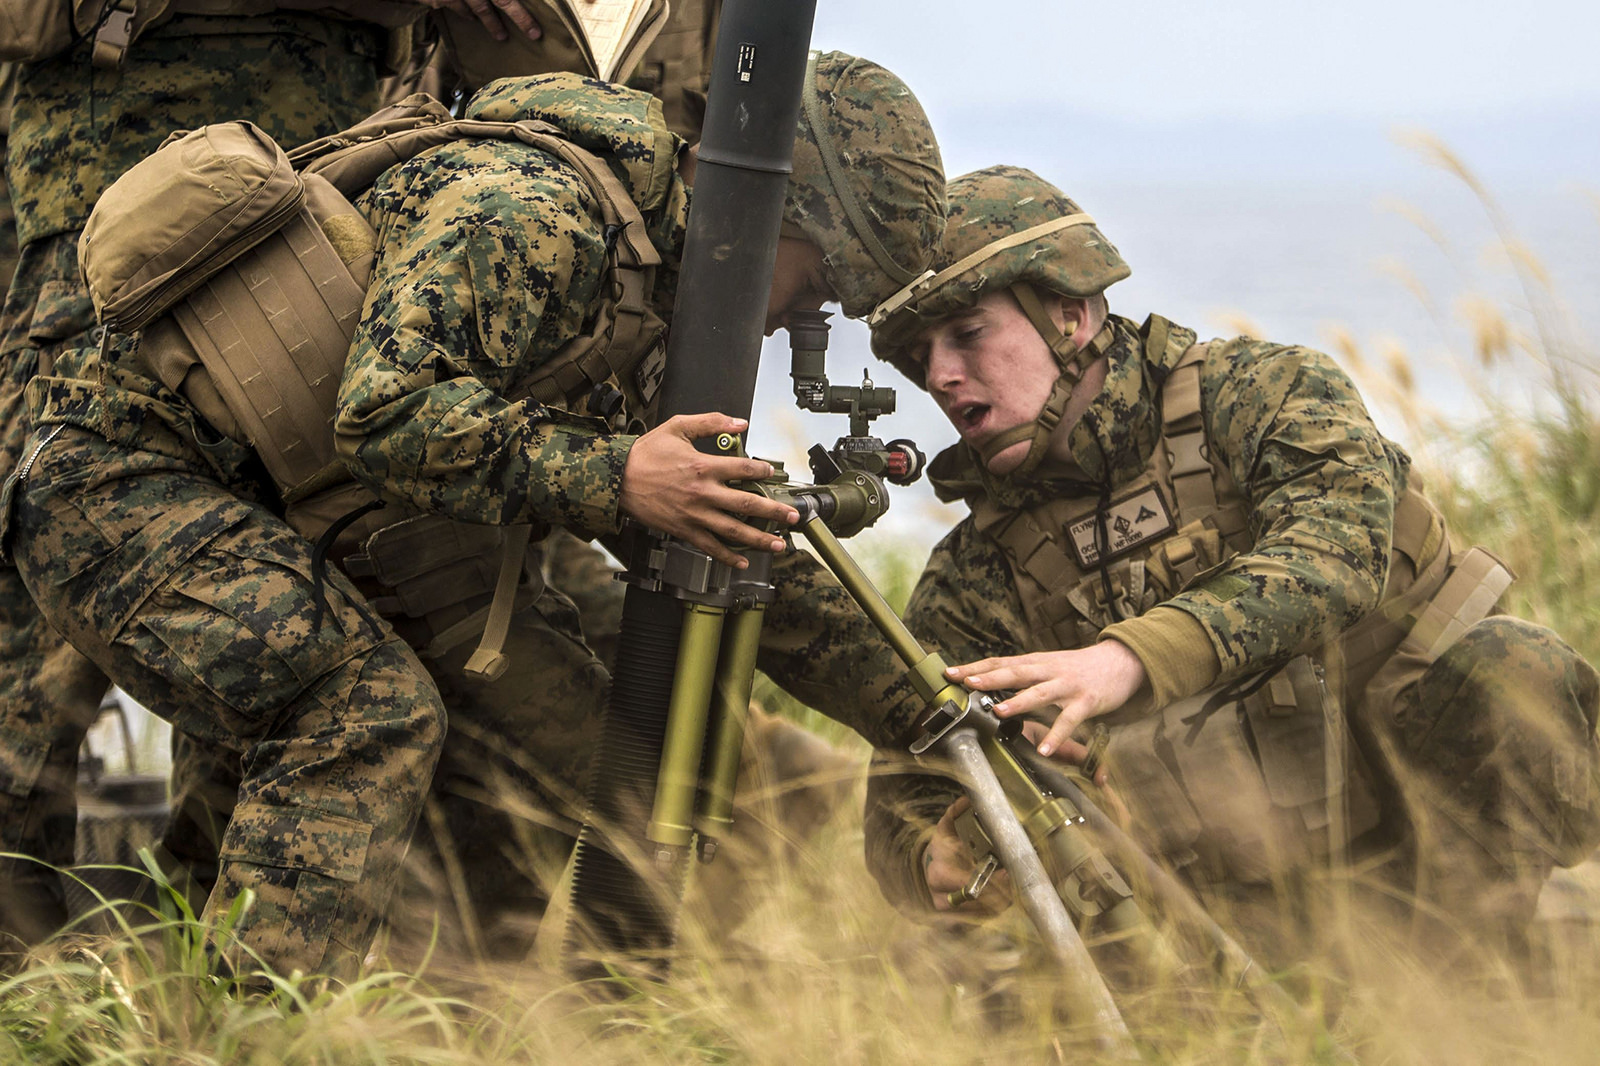 Marine Corps Lance Cpl. Felix Ruiz, left, and Marine Corps Lance Cpl. Devon Flynn, confirm the alignment of an 81mm mortar system at a range, Okinawa, on Dec. 21, 2017. (Cpl. Bernadette Wildes/Marine Corps)